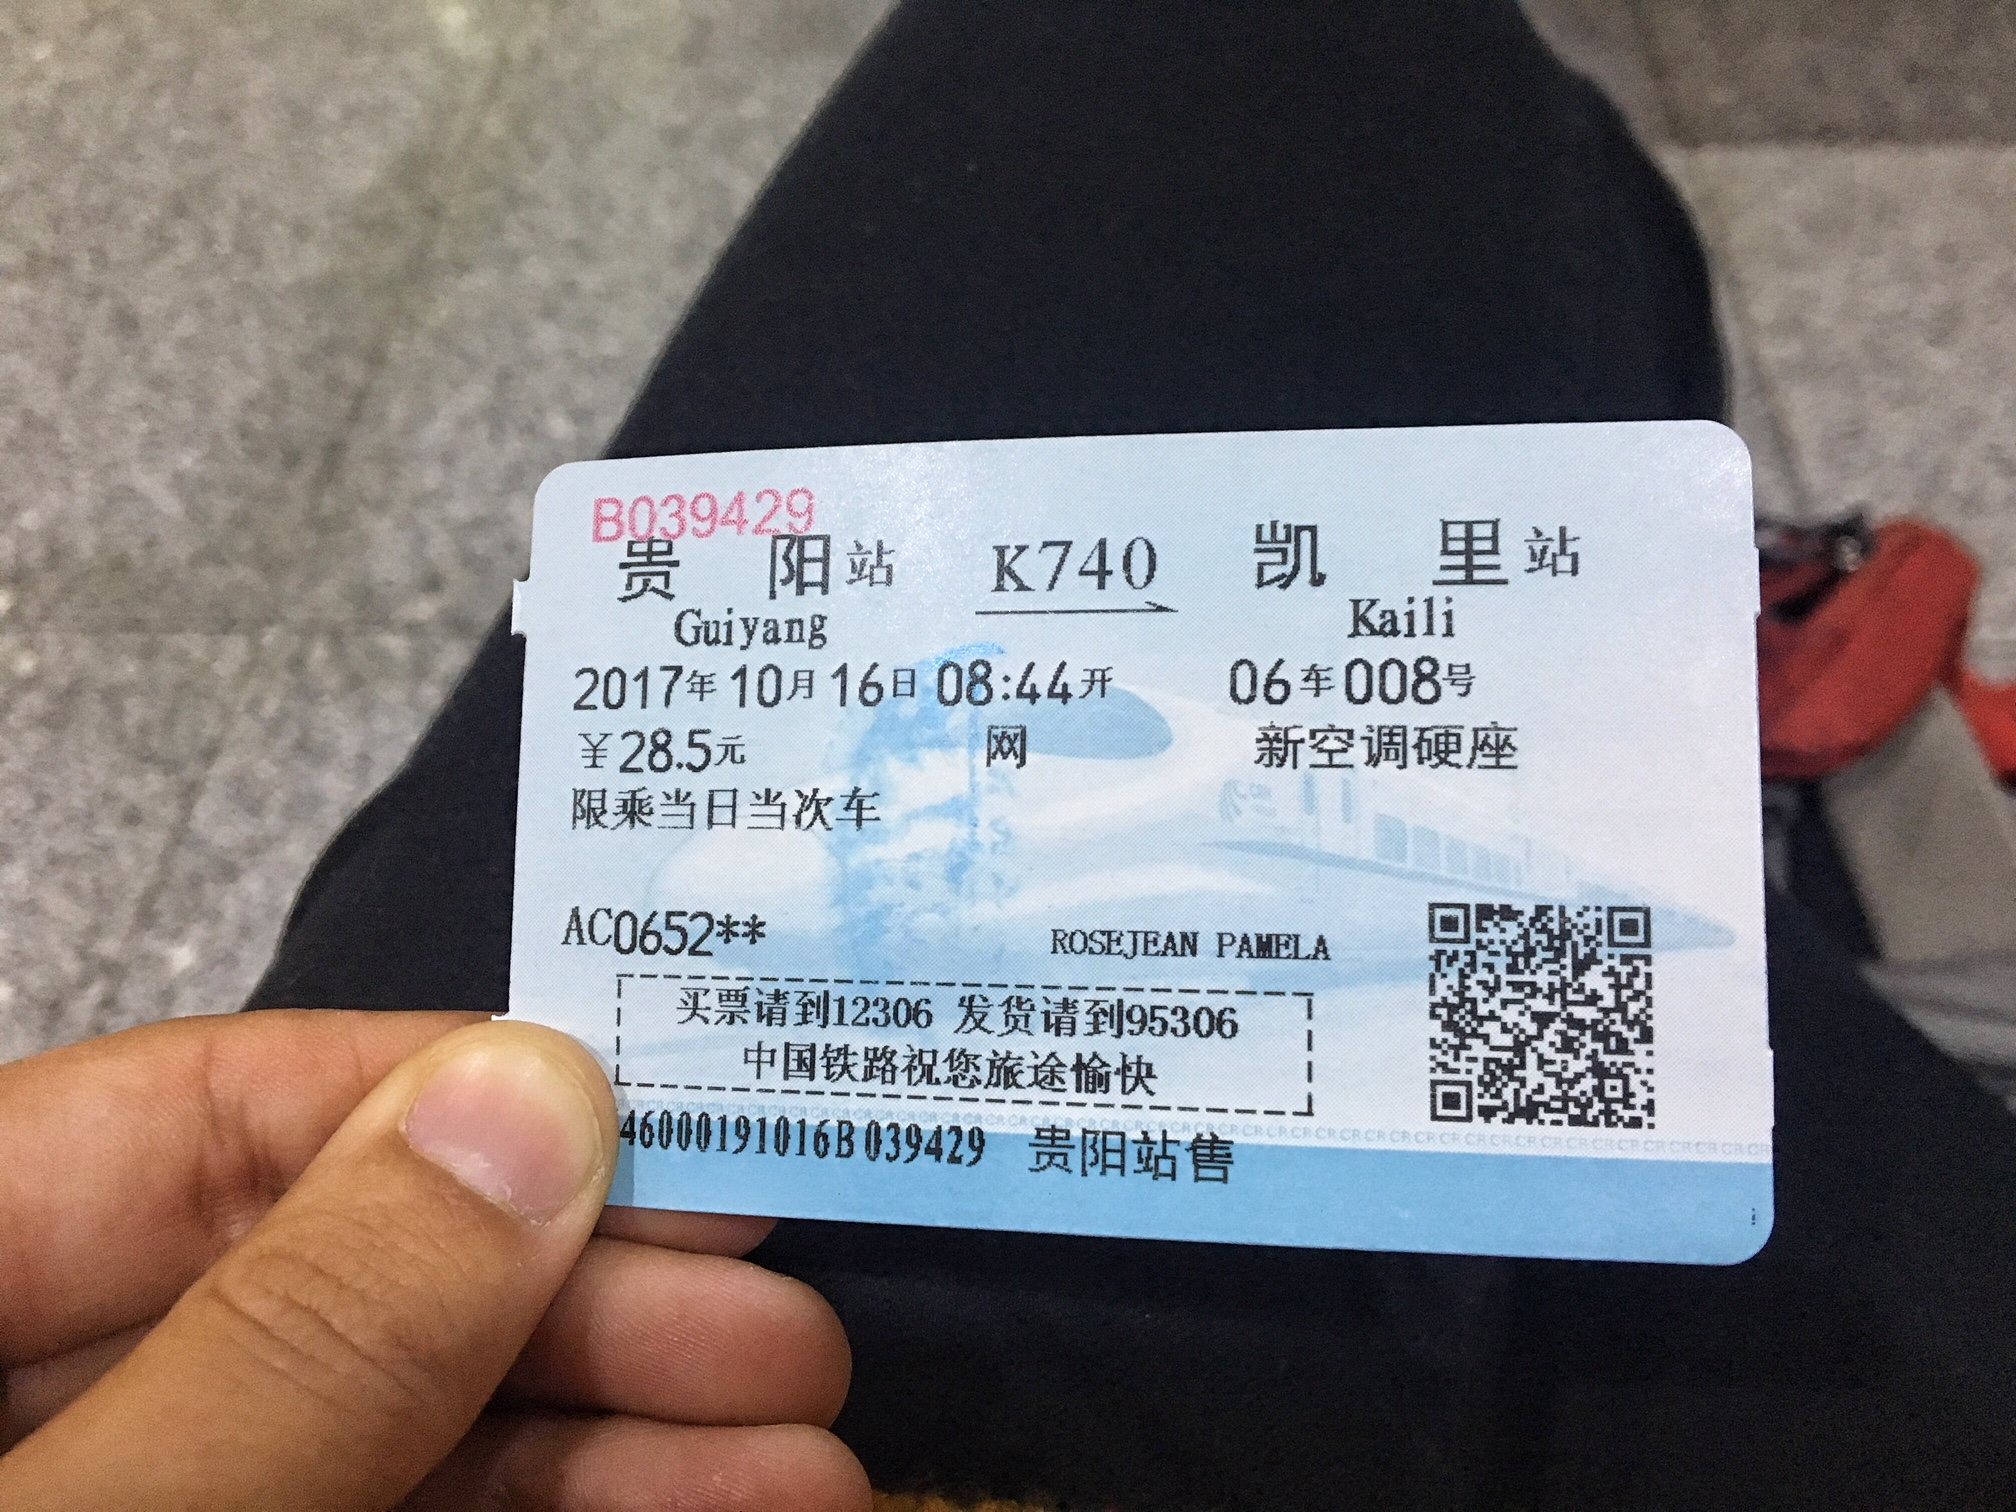 Billet de train en Chine